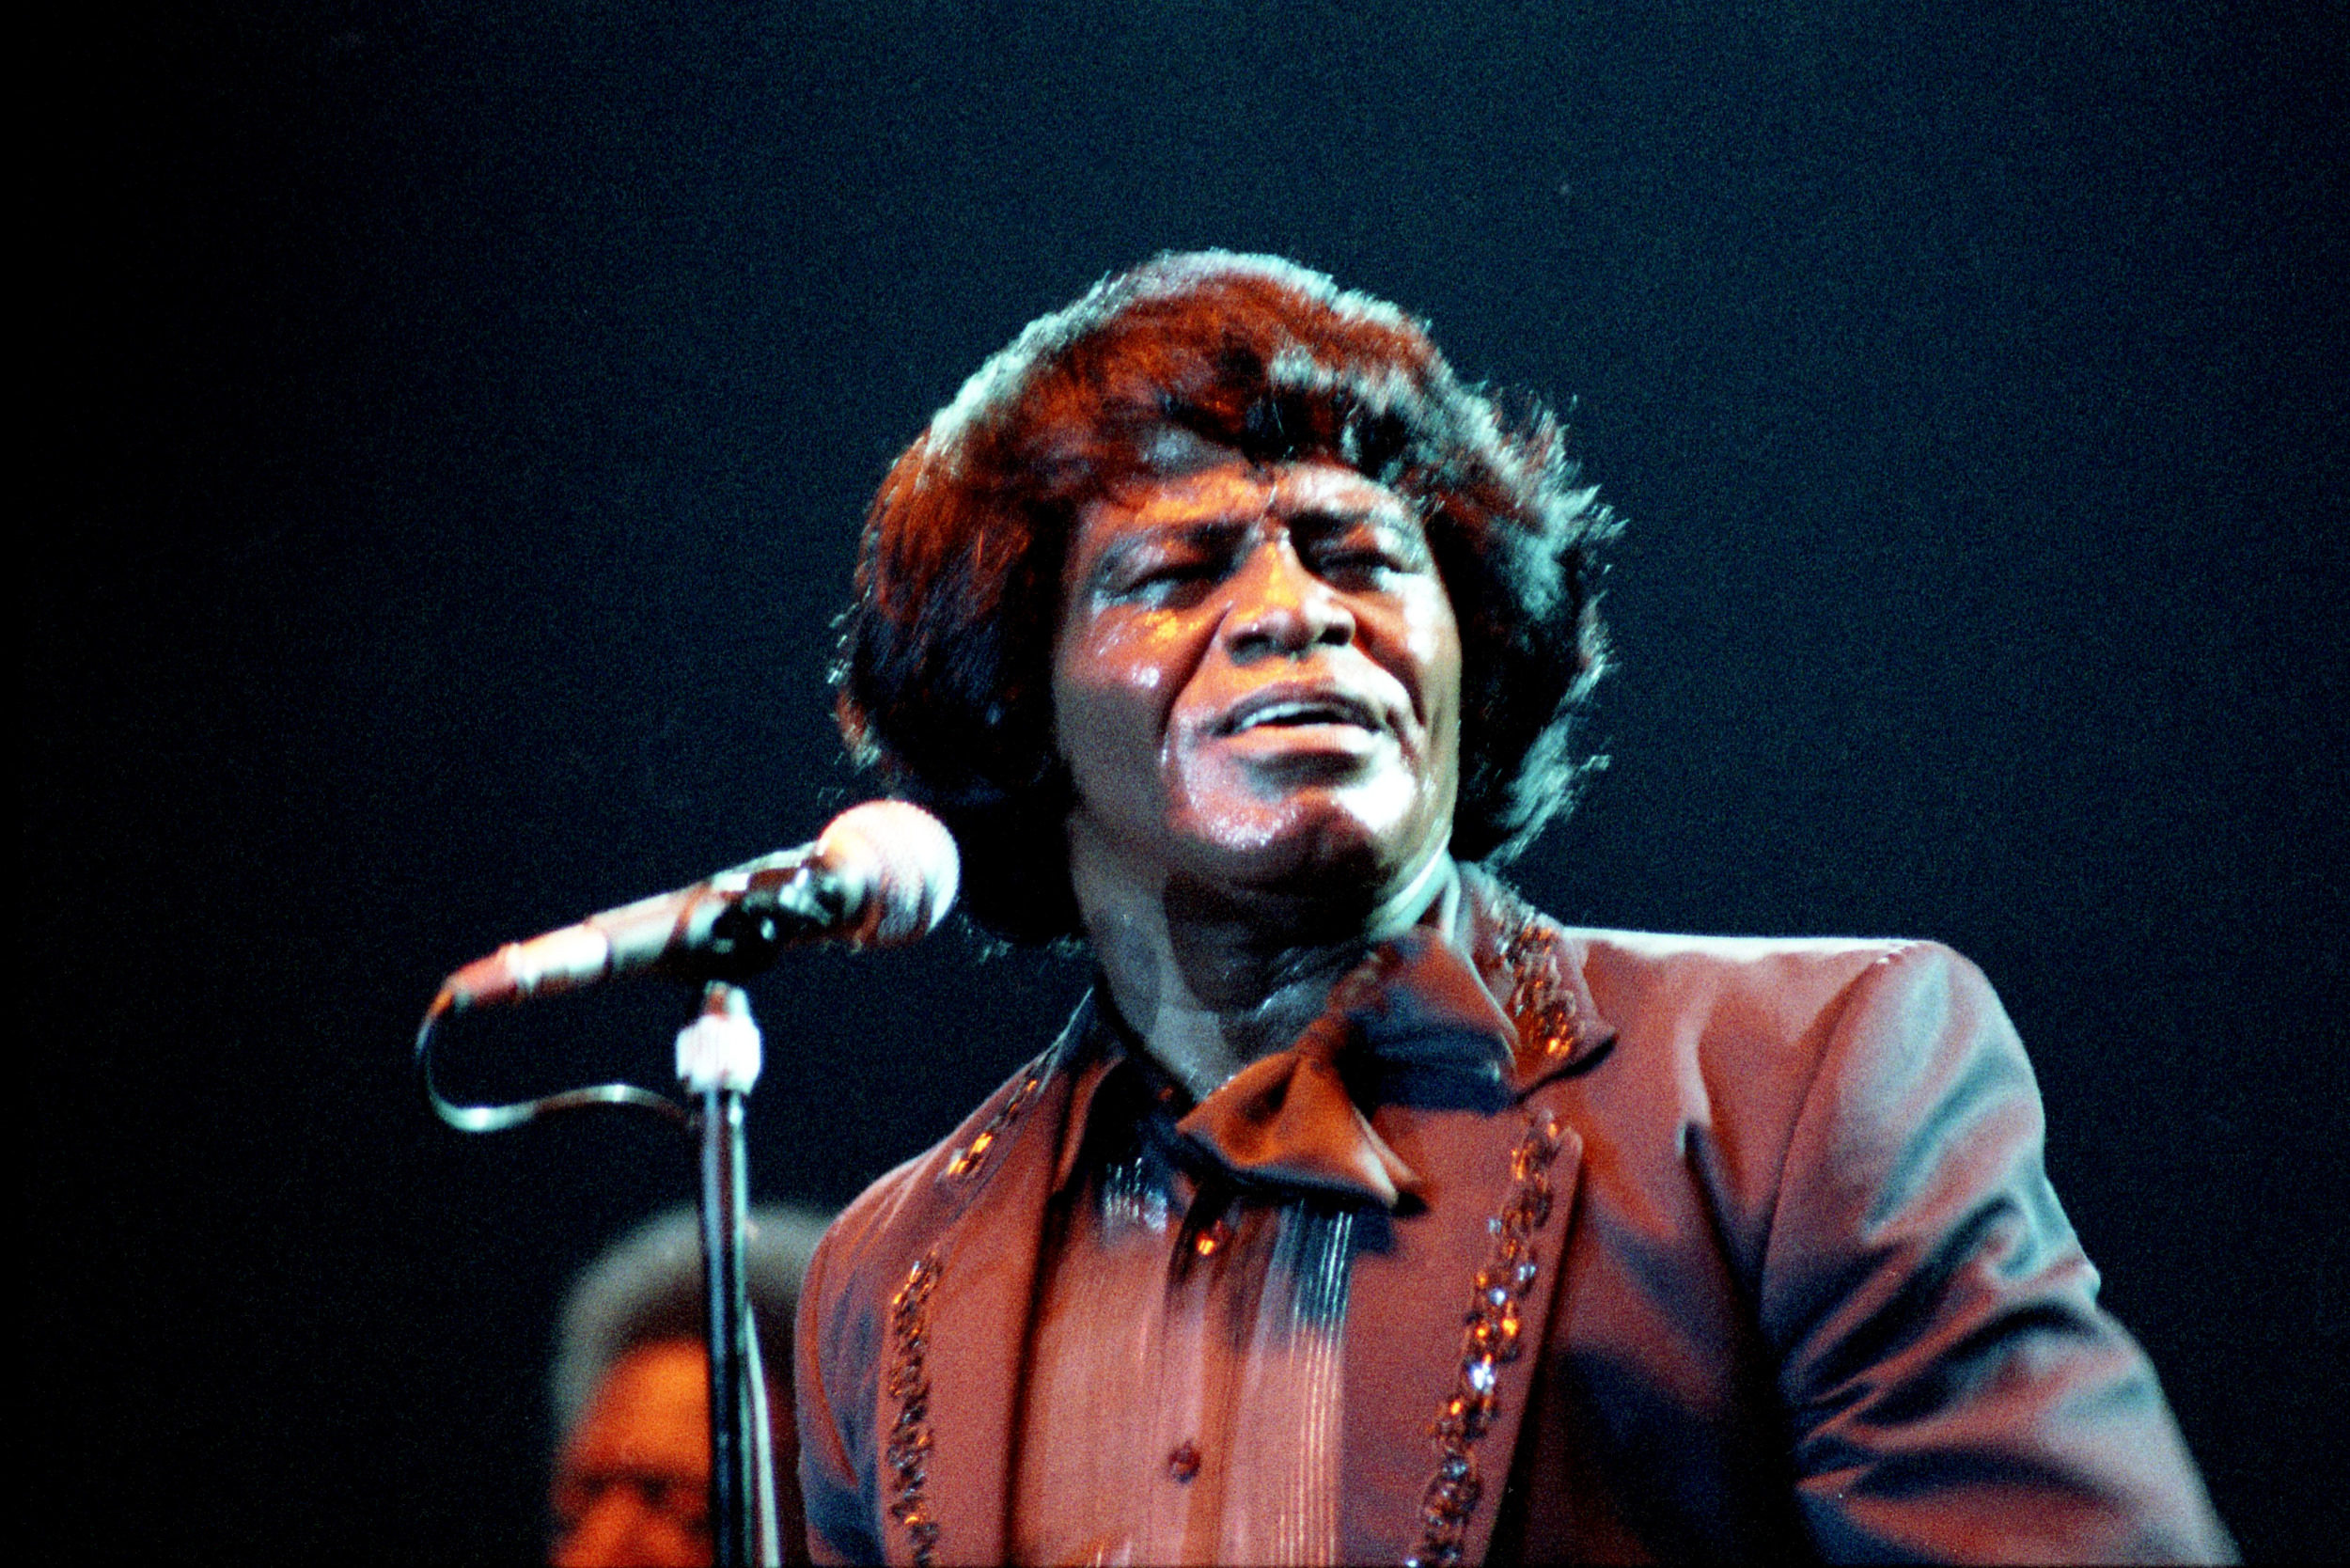 pop muziek popmuziek muzikanten artiest James Brown Ahoy Rotterdam 20 4 1986 Godfather of Soul